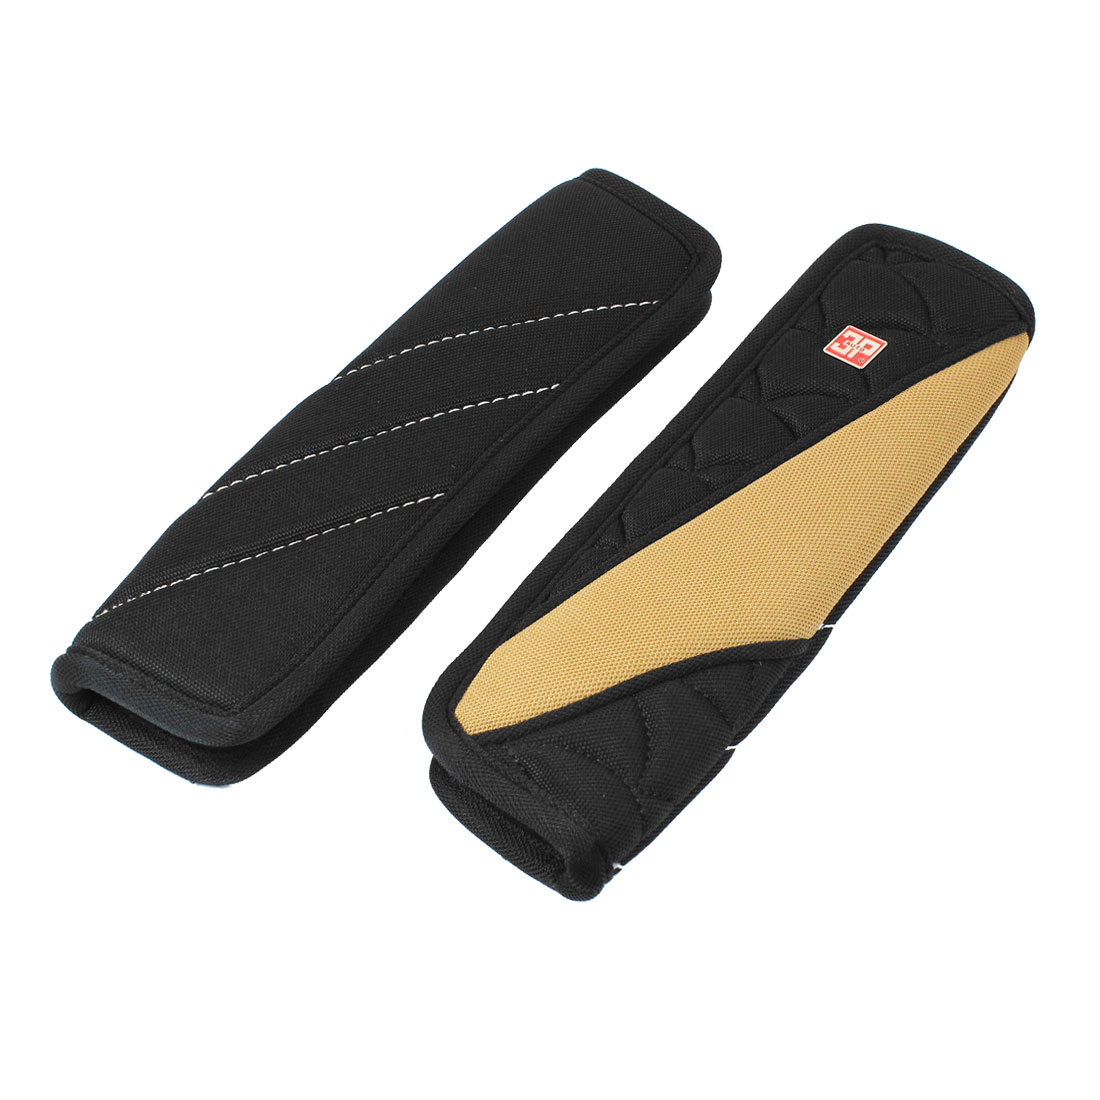 Pair Black Brown Nonslip Design Seat Belt Cover Pad Sleeve for Automotive Car